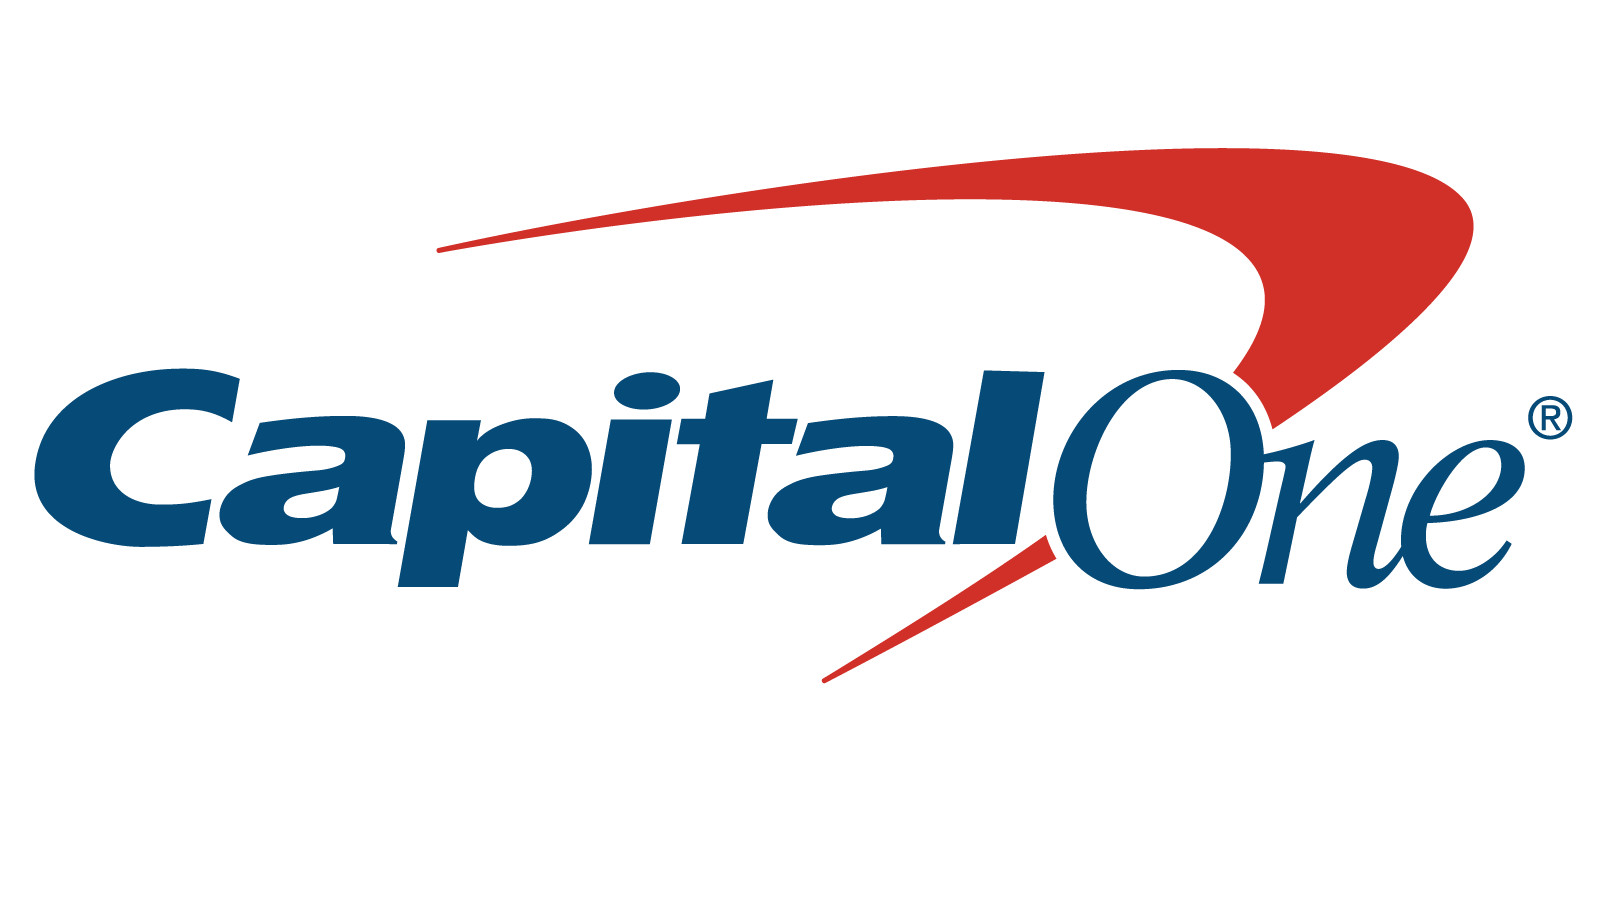 Over 100 million accounts compromised after Capital One data breach